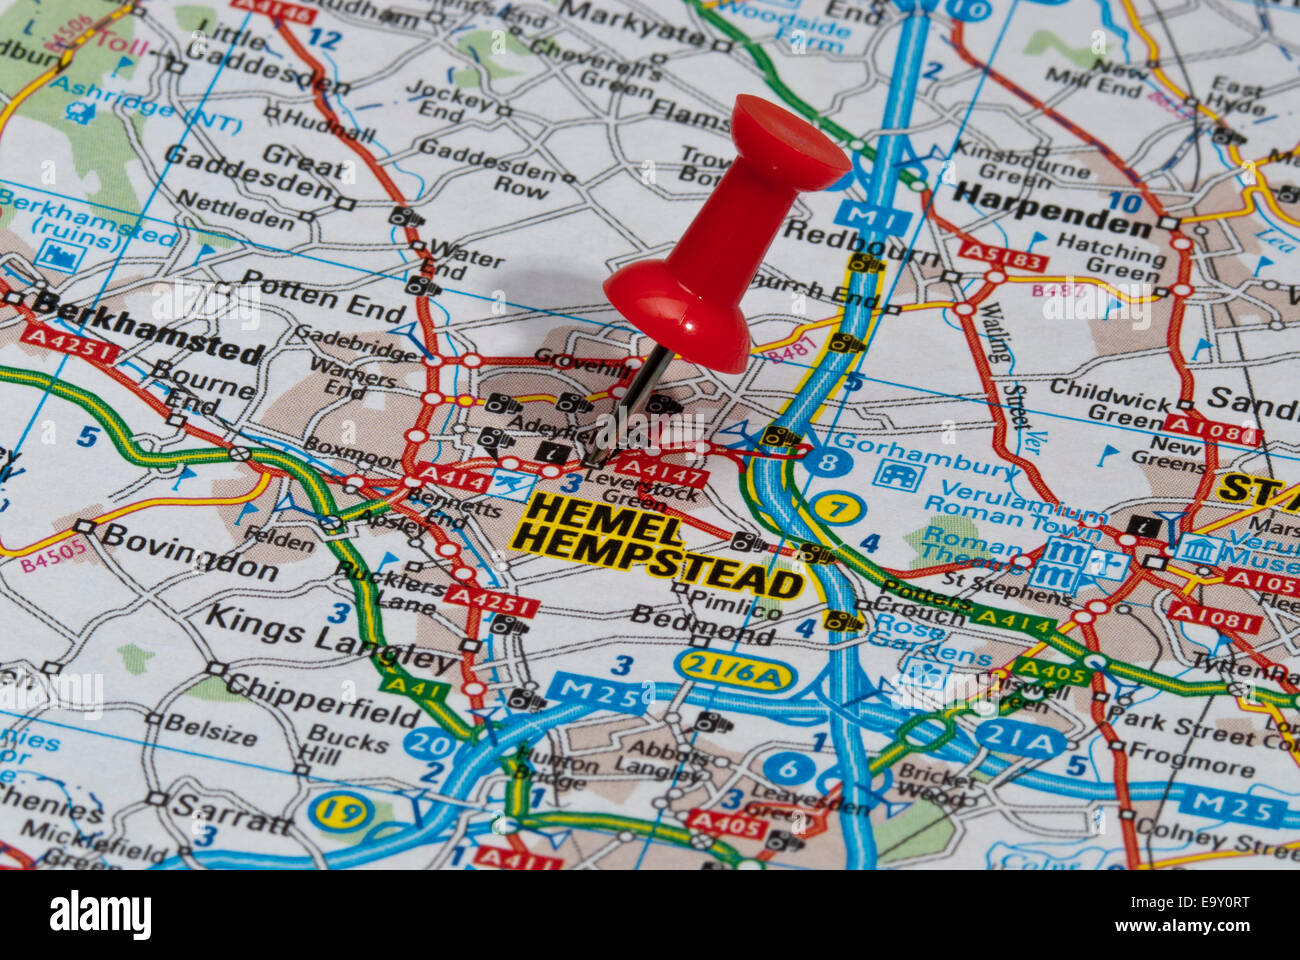 red map pin in road map pointing to city of Hemel Hempstead Stock